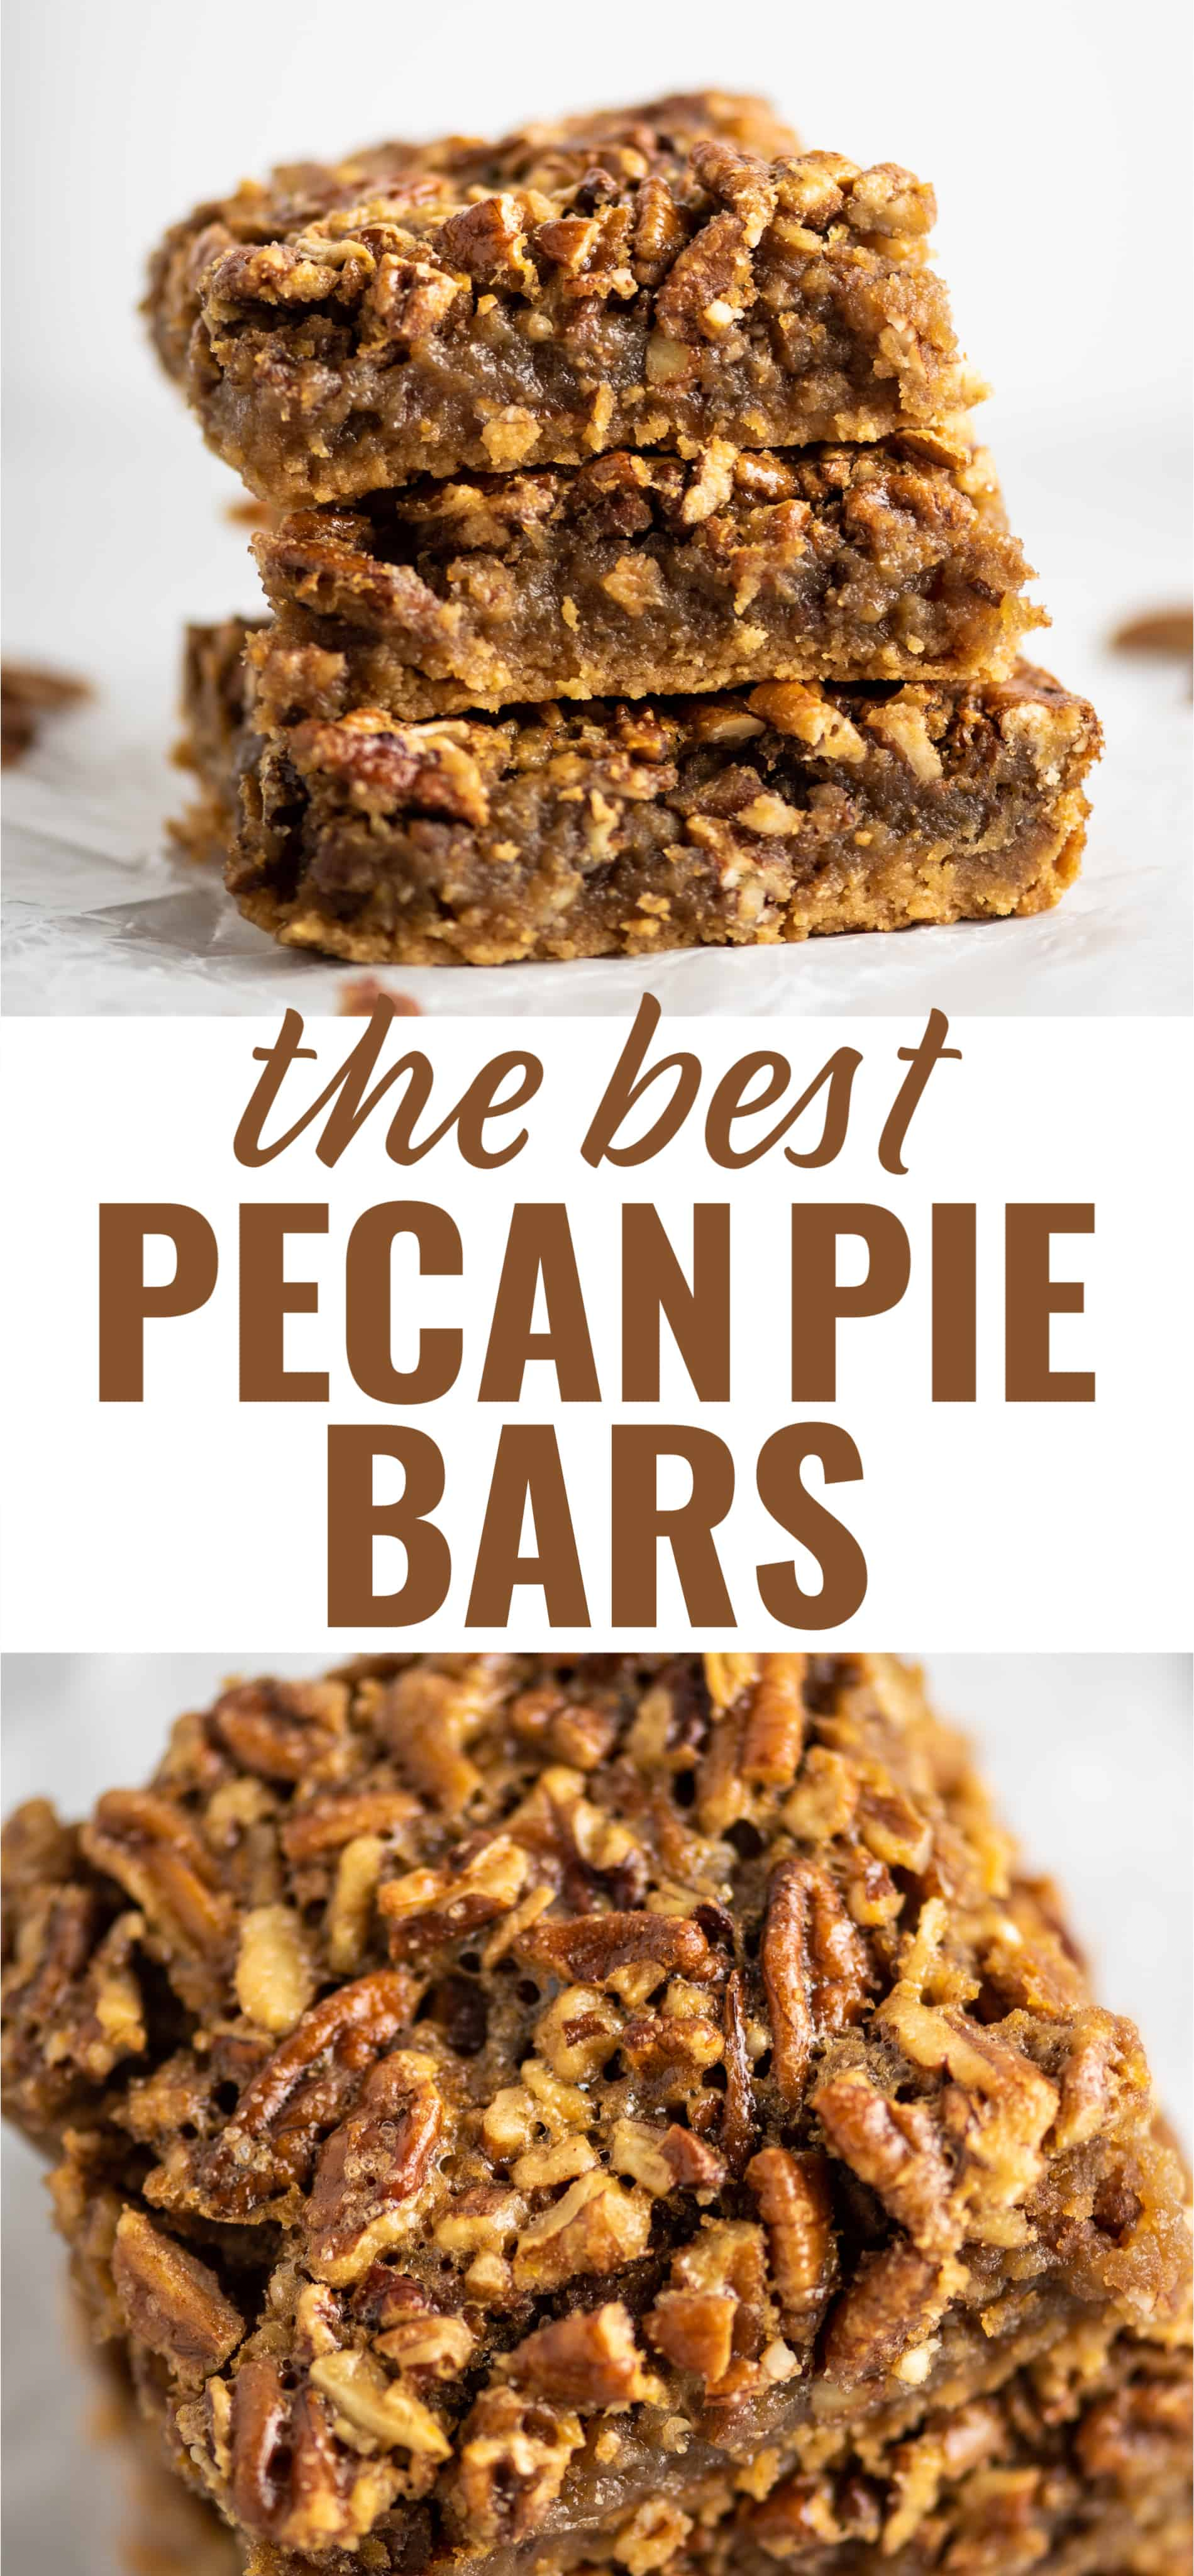 "image of pecan pie bars with the text ""the best pecan pie bars"""